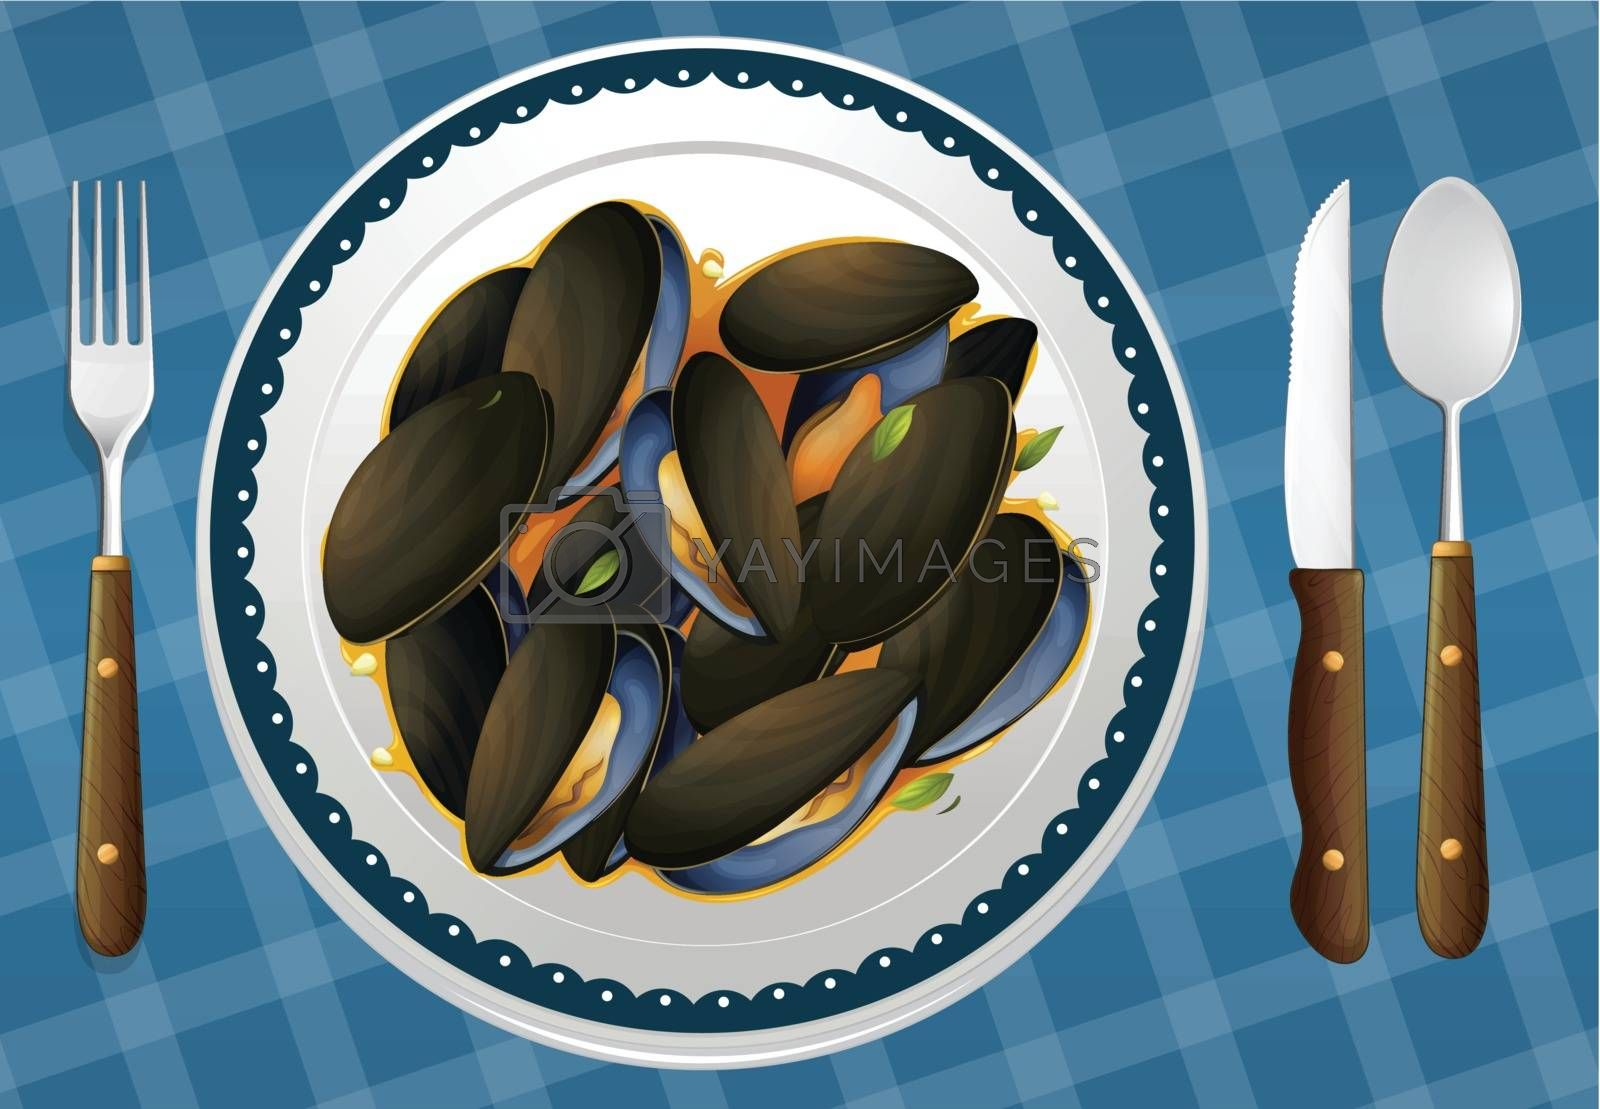 illustration of food and a dish on a blue background